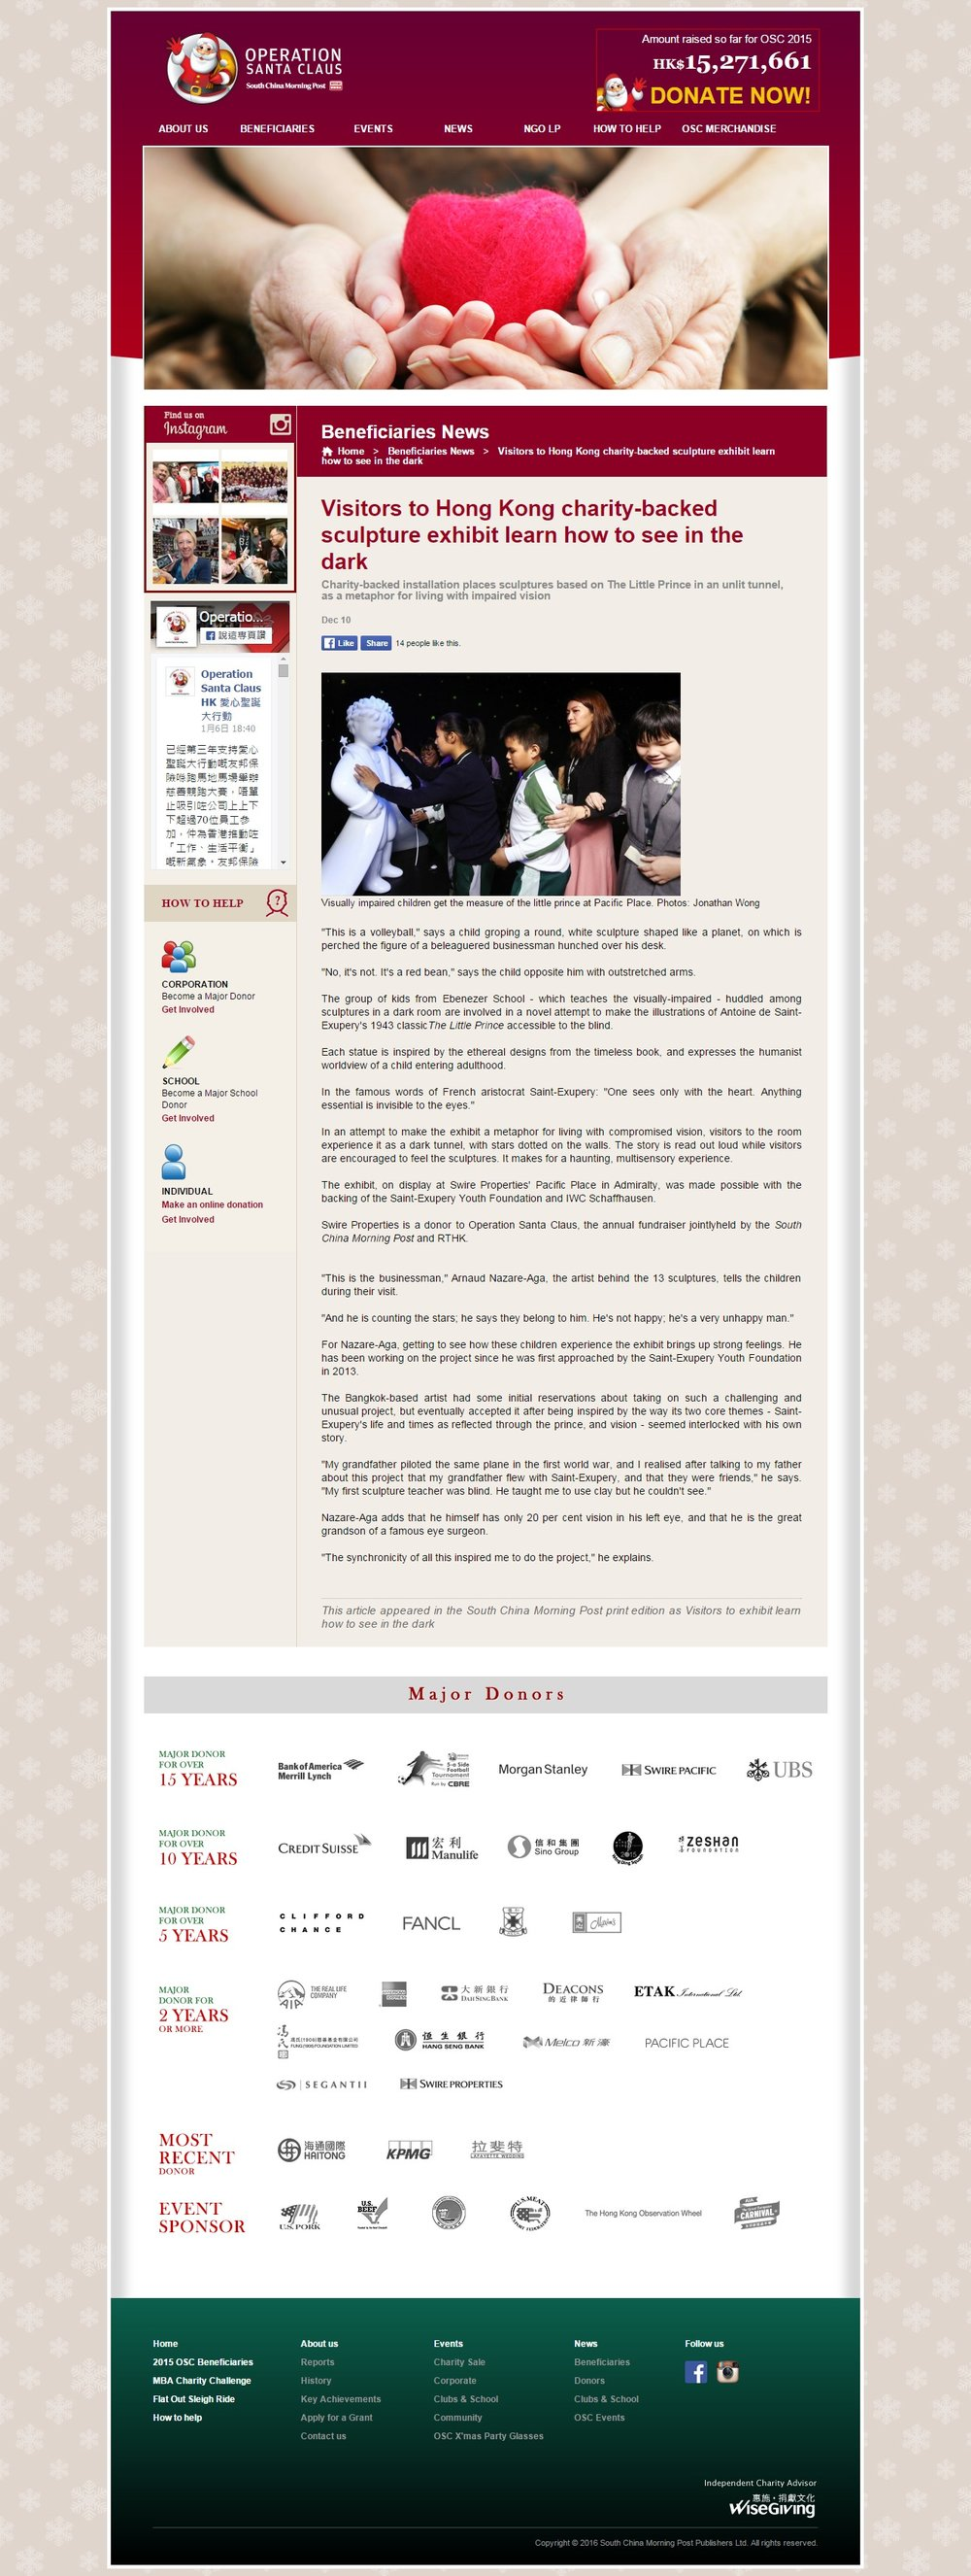 FireShot Capture - Beneficiaries News I Operation S_ - http___osc.scmp.com_article_beneficiaries_324.jpg